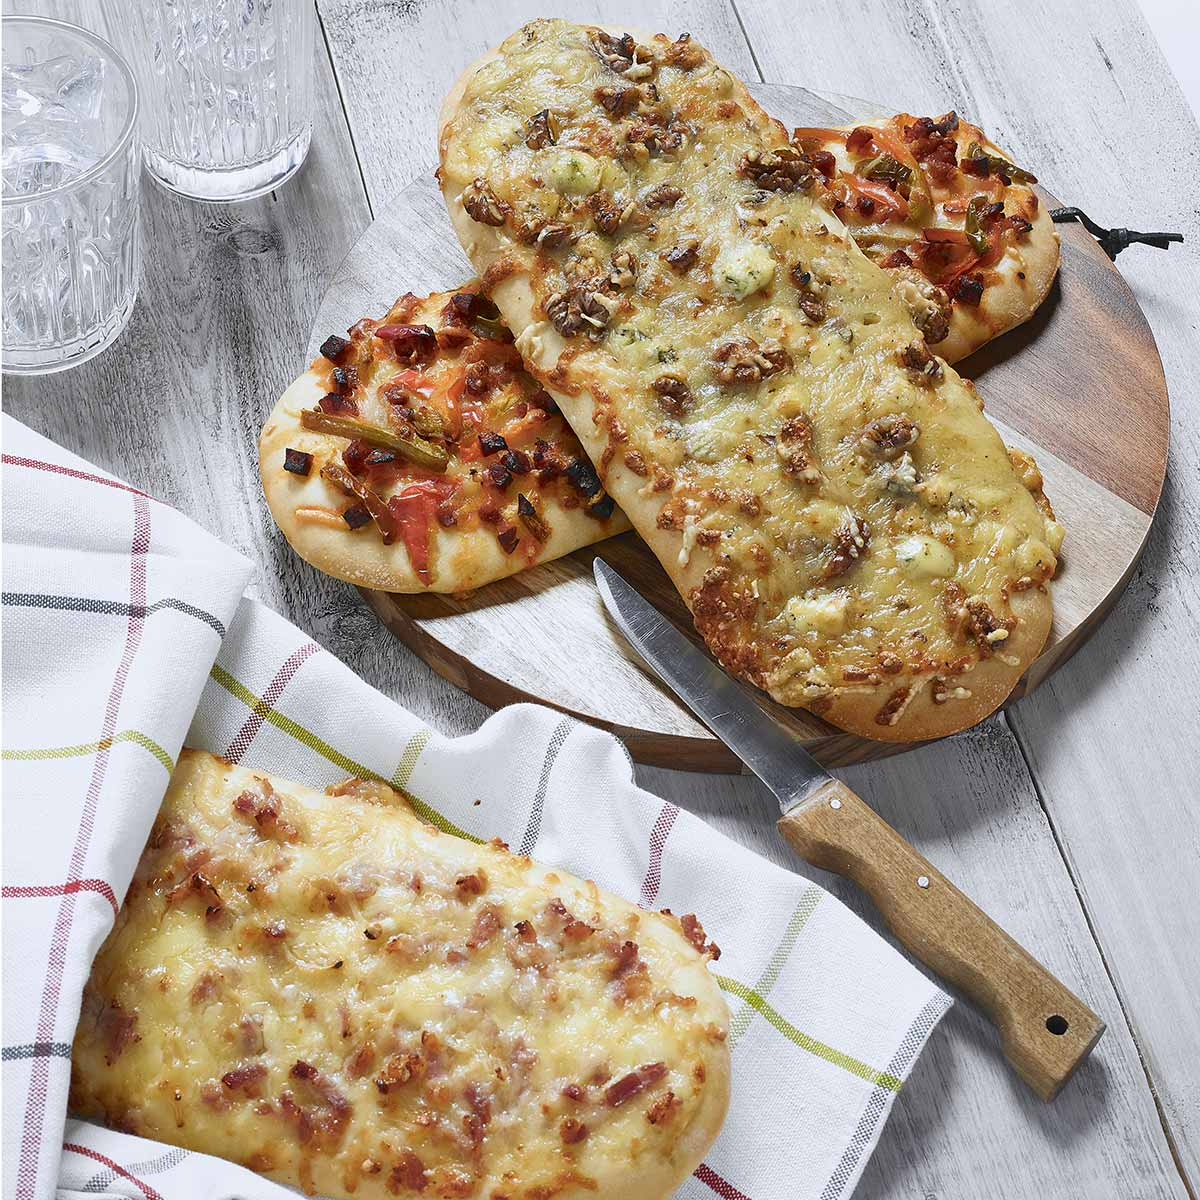 Fourme d'Ambert AOP cheese and walnut fougasse